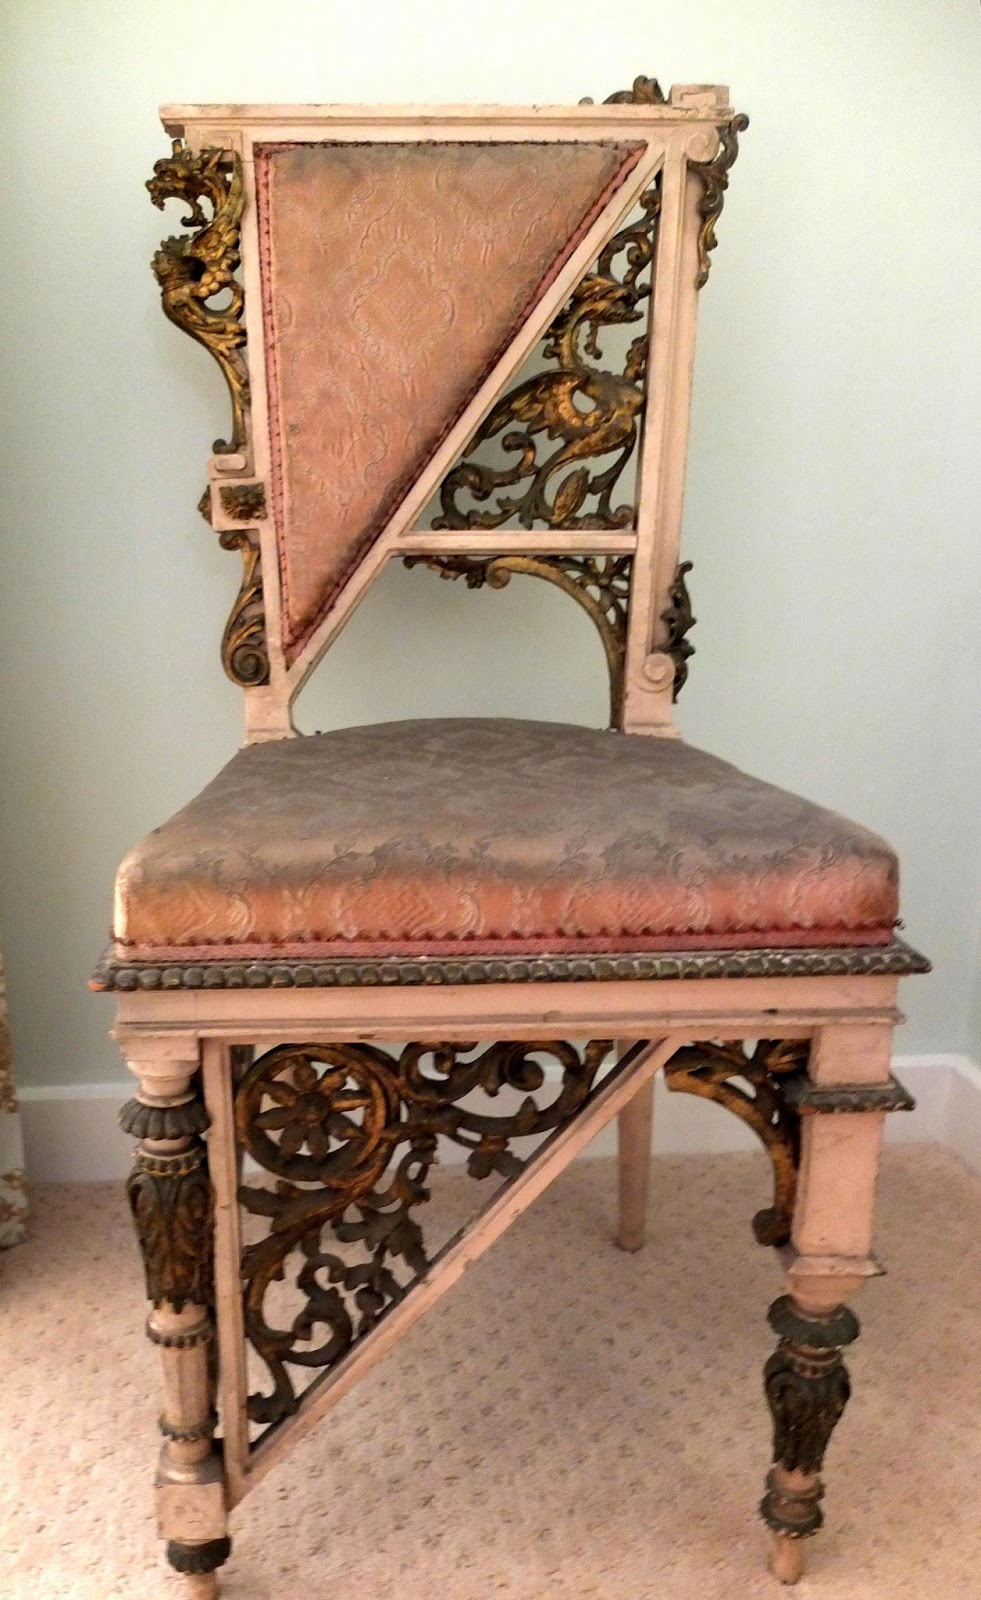 Unusual Chairs - Antique Italian Aesthetic Movement - Antique Style: Unusual Chairs - Antique Italian Aesthetic Movement